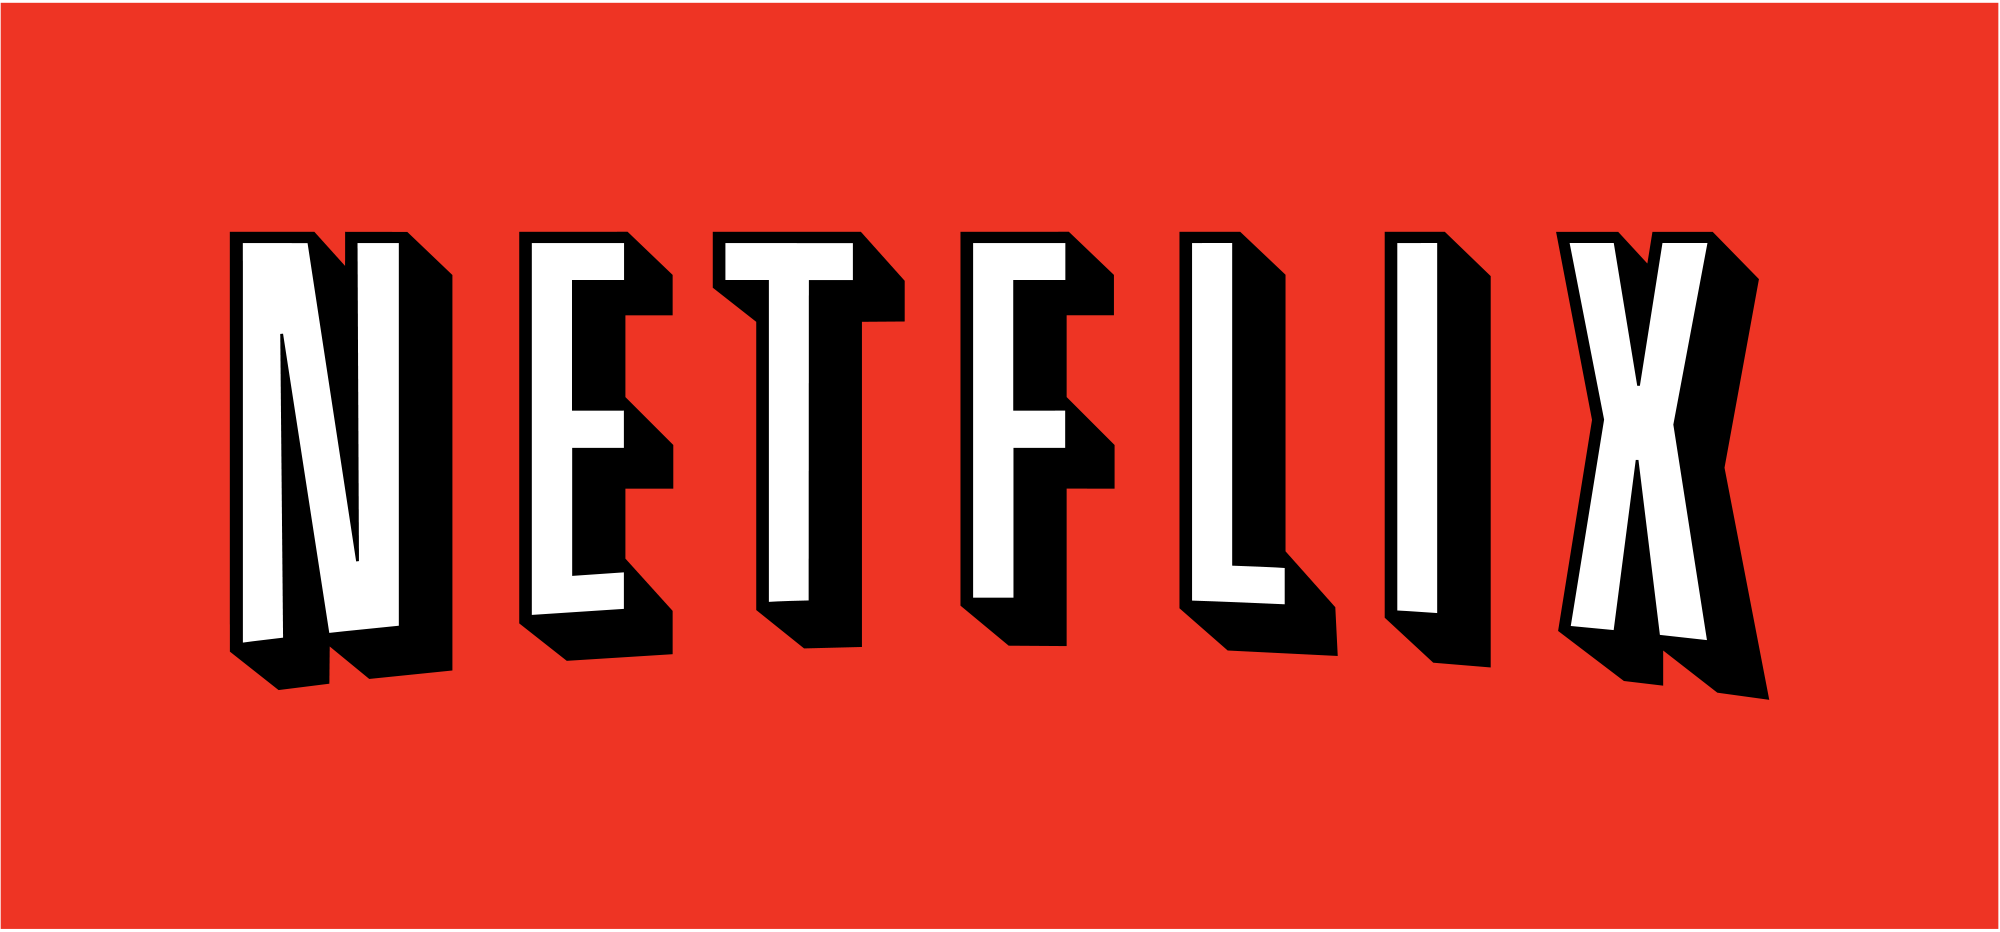 14019907992 d3f3d15102 o Dont Settle For UK Netflix, Heres How To Get The Better U.S. Version